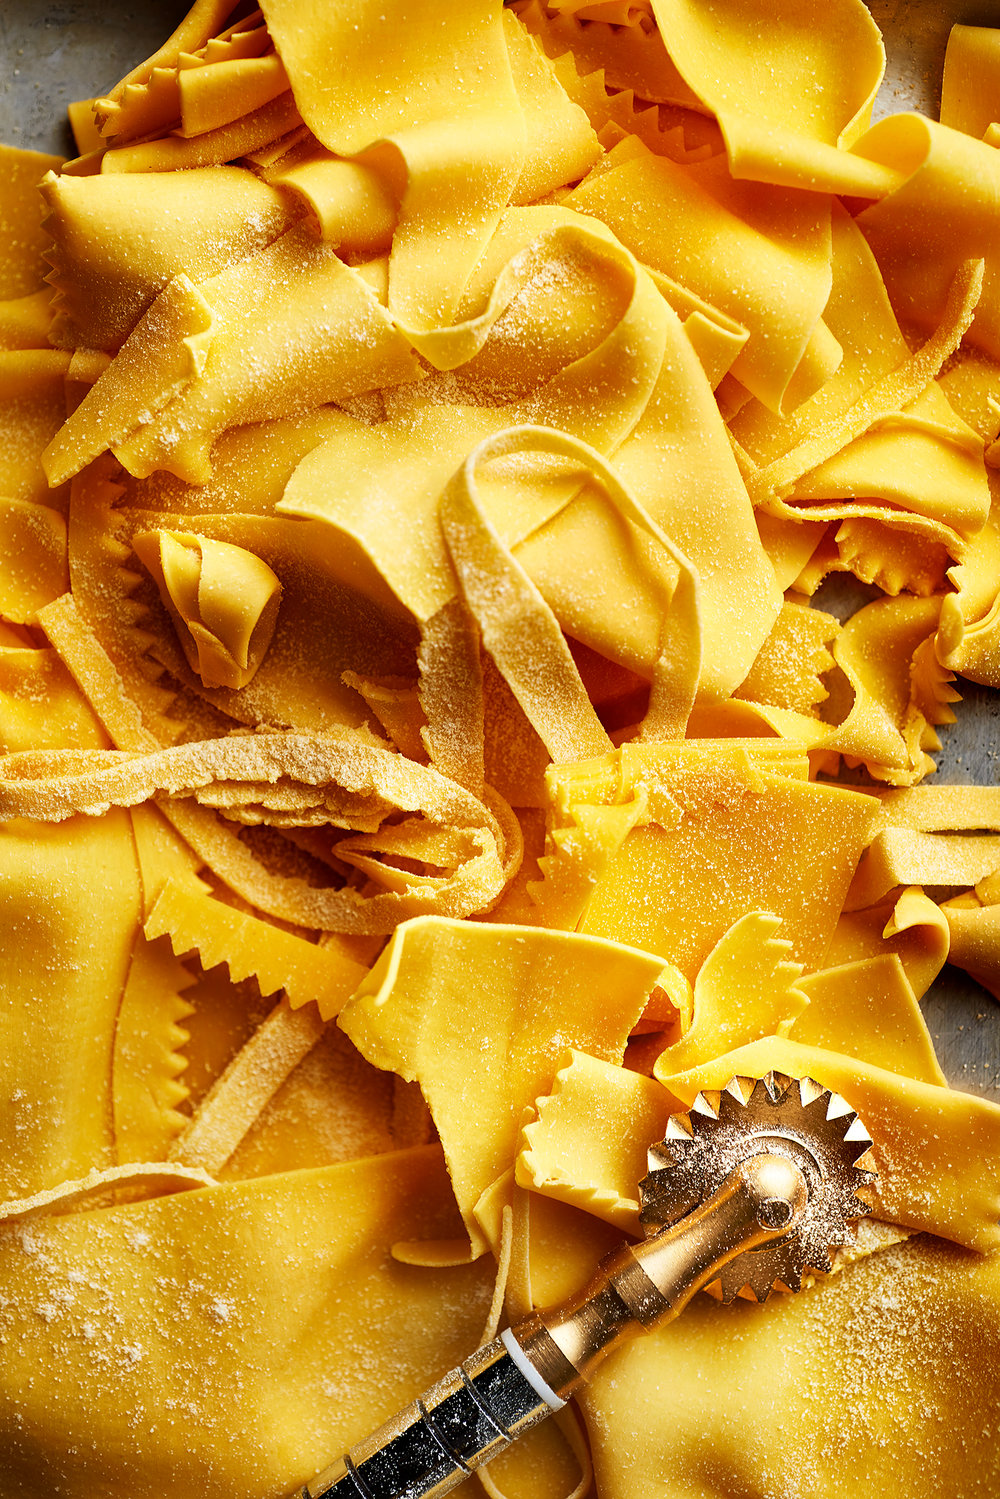 food photographer photography drink pasta recipe recipes hand made fresh prepared documentary provenance cooking cook cookbook recipe making process steps step by step black and white hands hand cutter cutting tool tools tortellini tortelloni lasagne tools pasta making overhead brass cutter roller brush extruder press oxtail ox tail ragu bolognese parpadelle tagliatelle scott grummett